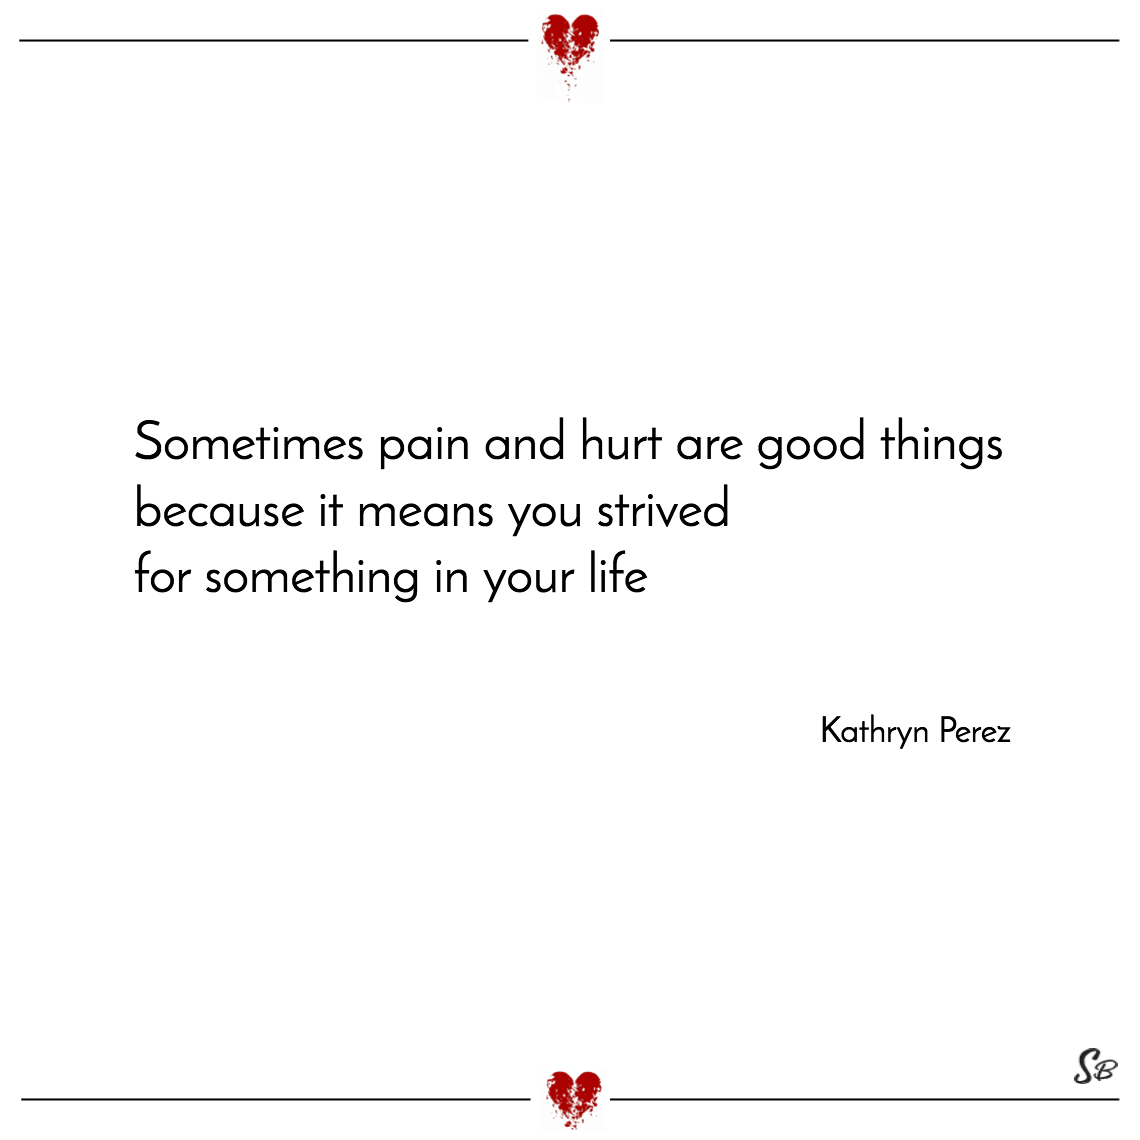 Sometimes pain and hurt are good things because it means you strived for something in your life kathryn perez